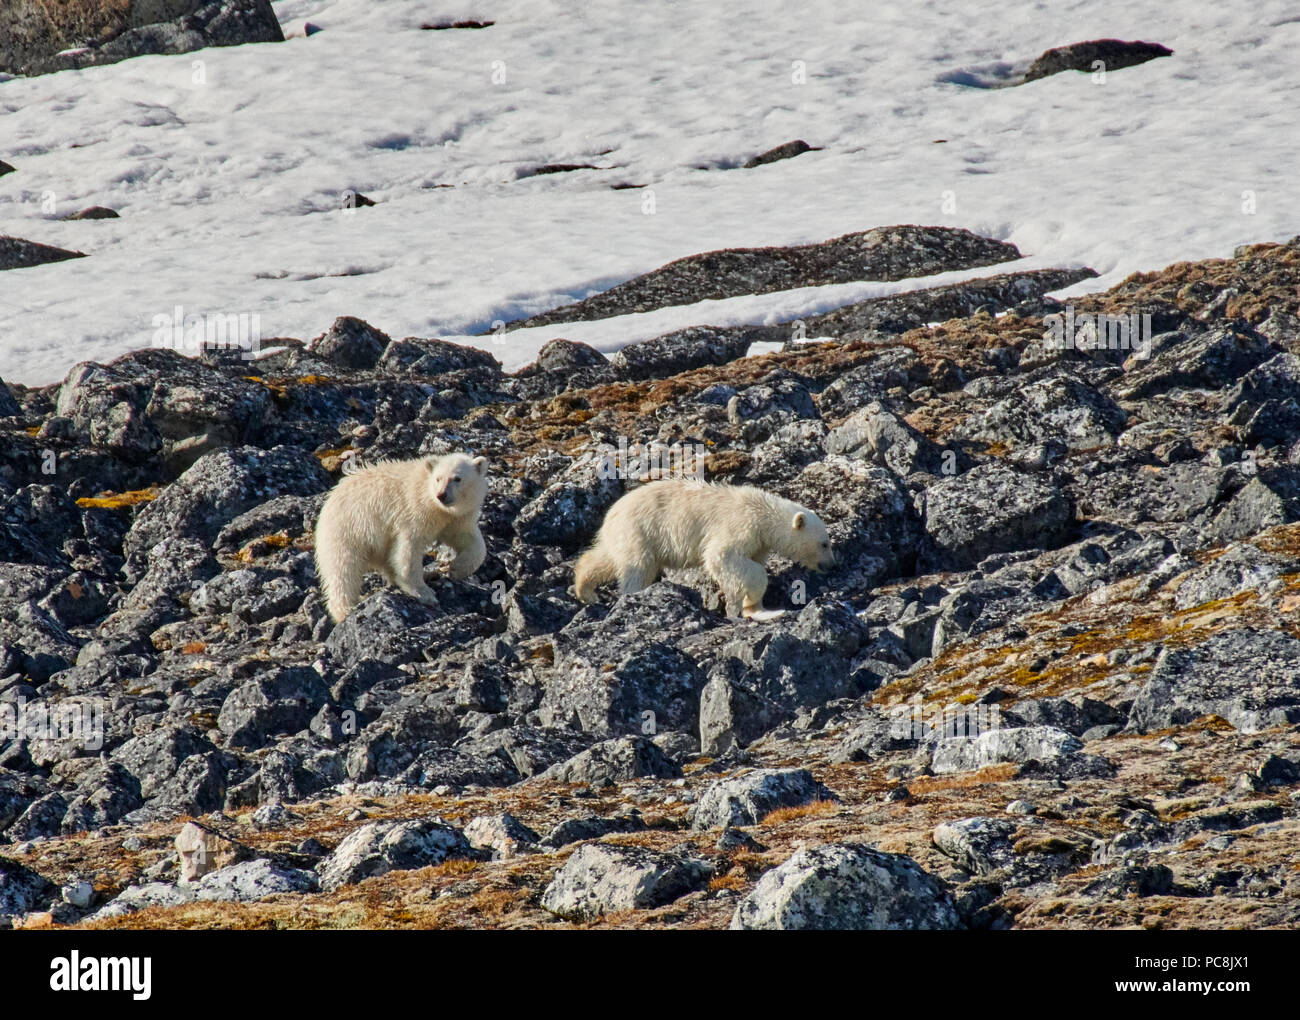 two polar bear cubs (Ursus maritimus) steeping on stones, Svalbard or Spitsbergen, Europe - Stock Image